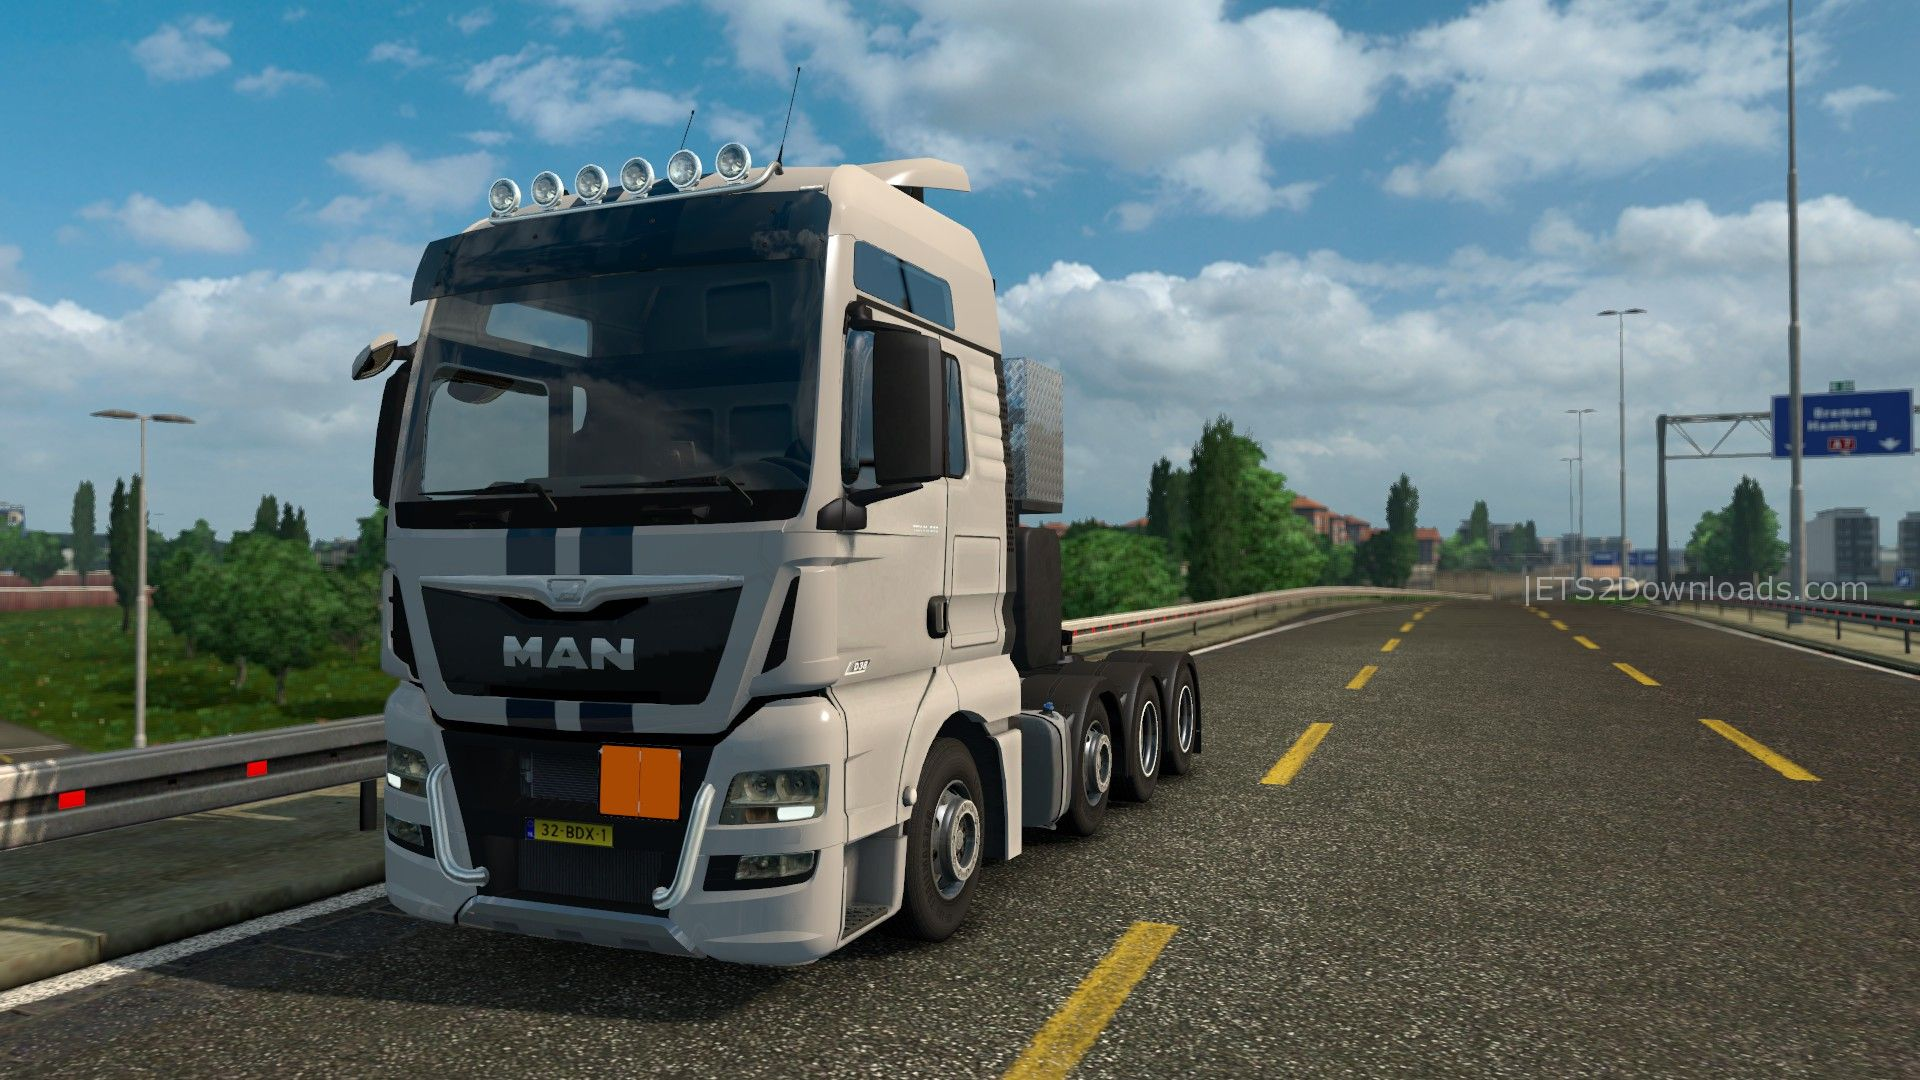 man tgx euro 6 v1 8 euro truck simulator 2 spot. Black Bedroom Furniture Sets. Home Design Ideas